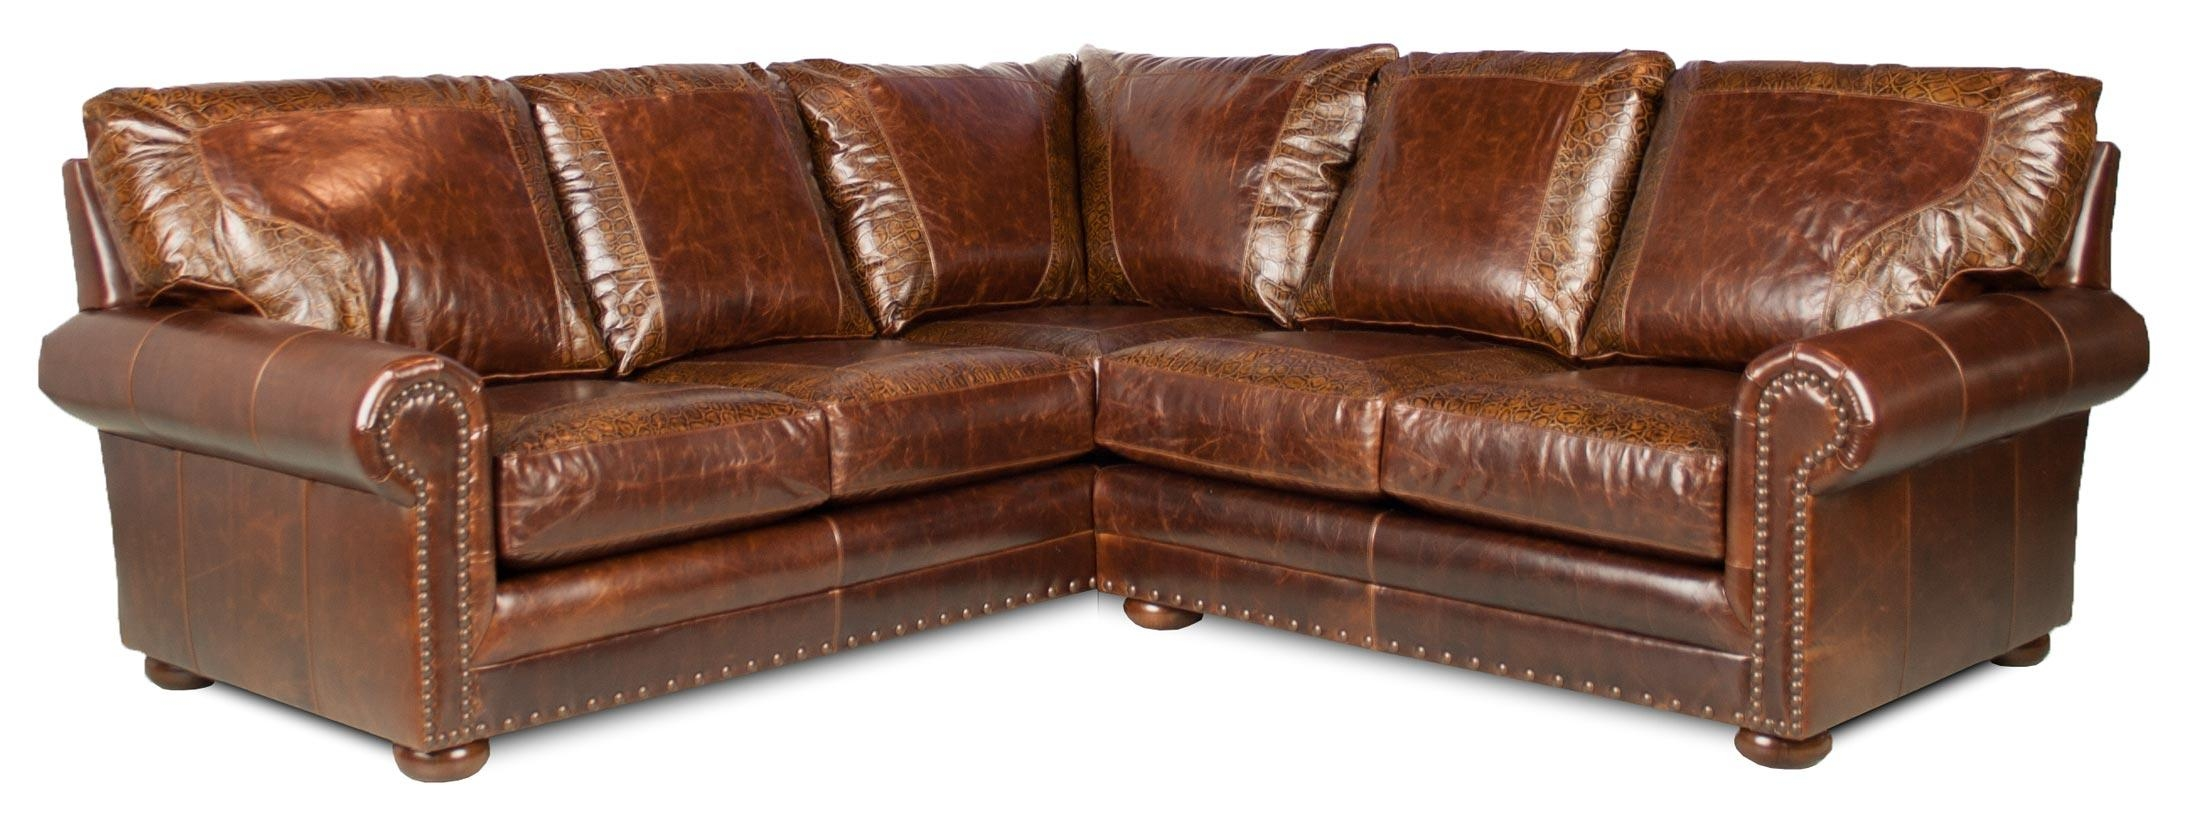 Austin – Leather Sectional | Leather Creations Furniture – Custom Intended For Austin Sectional Sofa (Image 1 of 15)